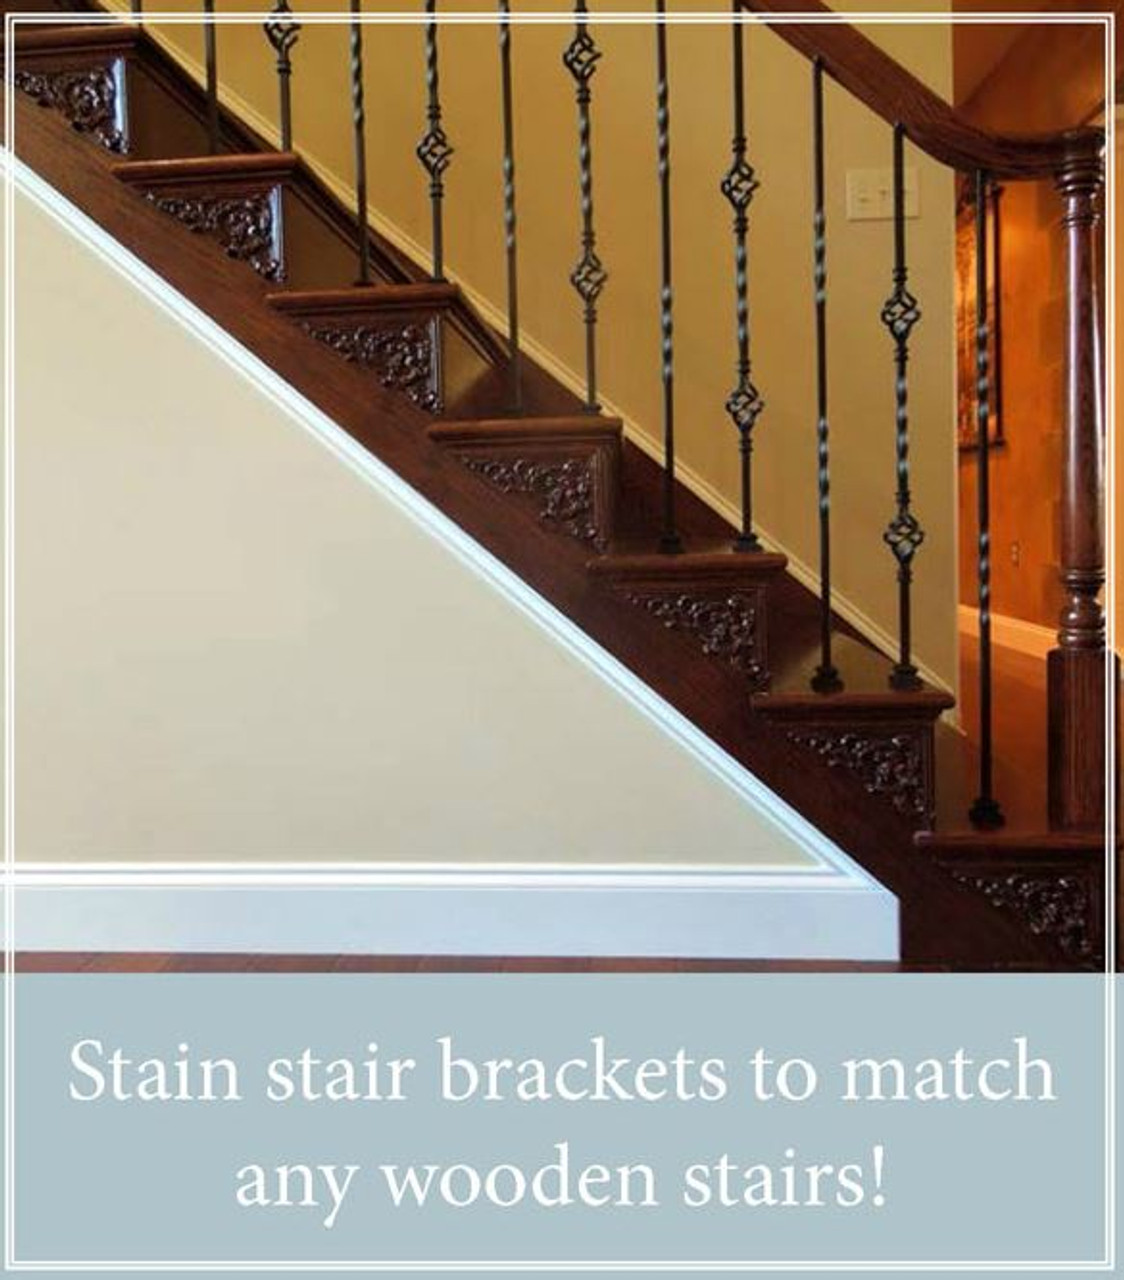 Stain stair brackets to match any wooden stairs